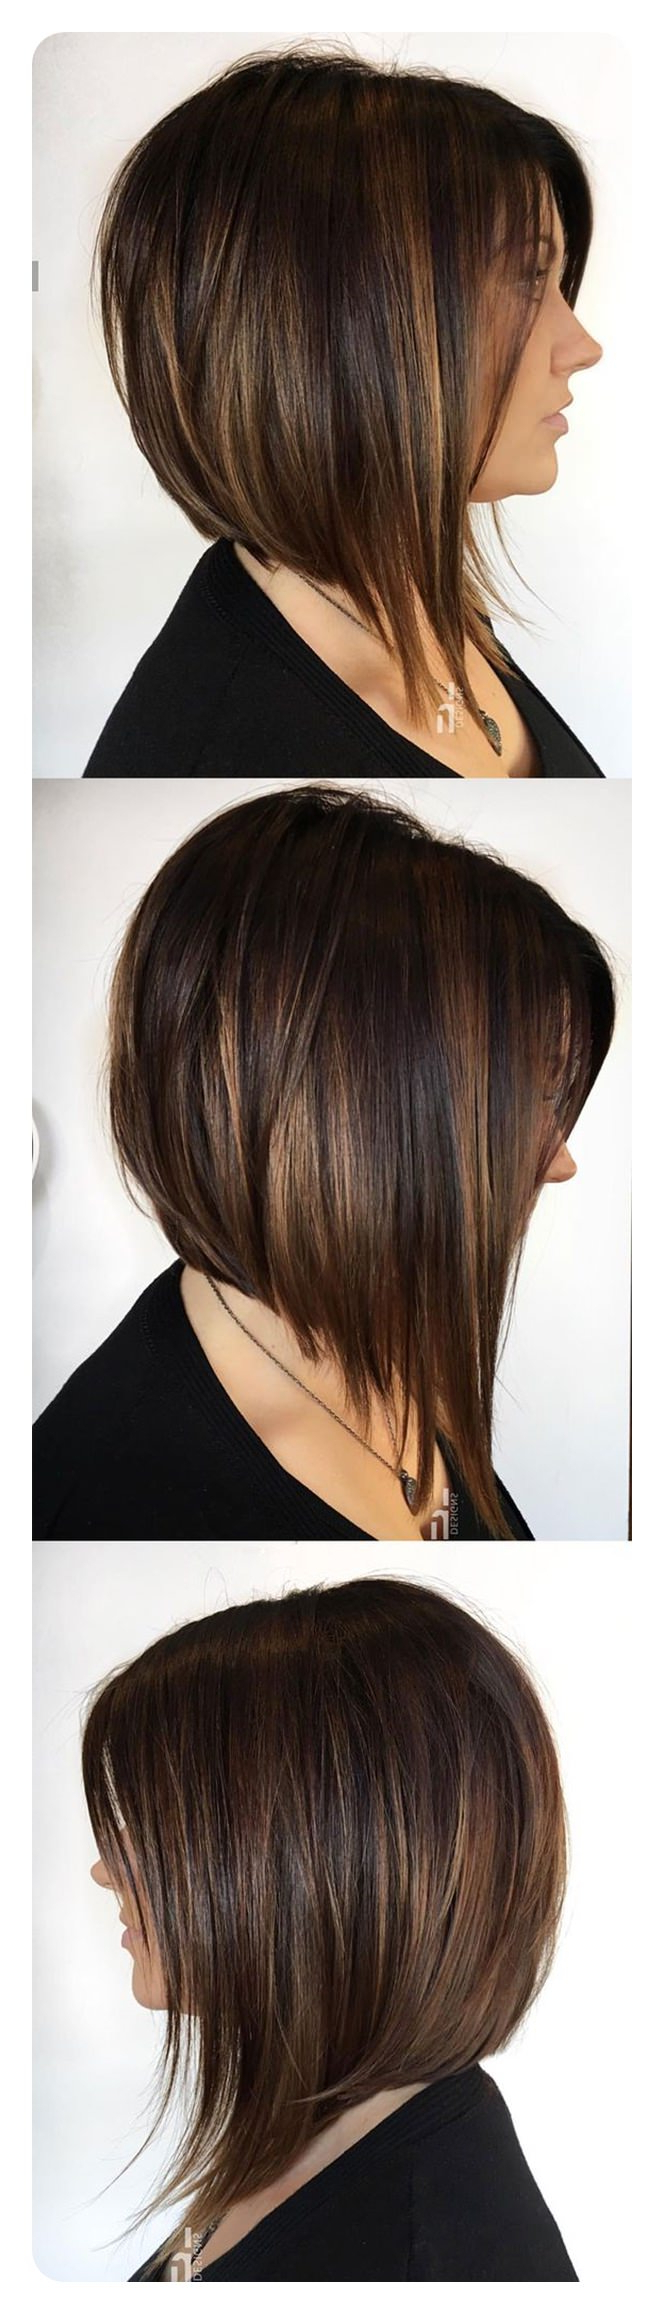 92 Layered Inverted Bob Hairstyles That You Should Try Within Well Known Stacked And Angled Bob Braid Hairstyles (View 9 of 20)